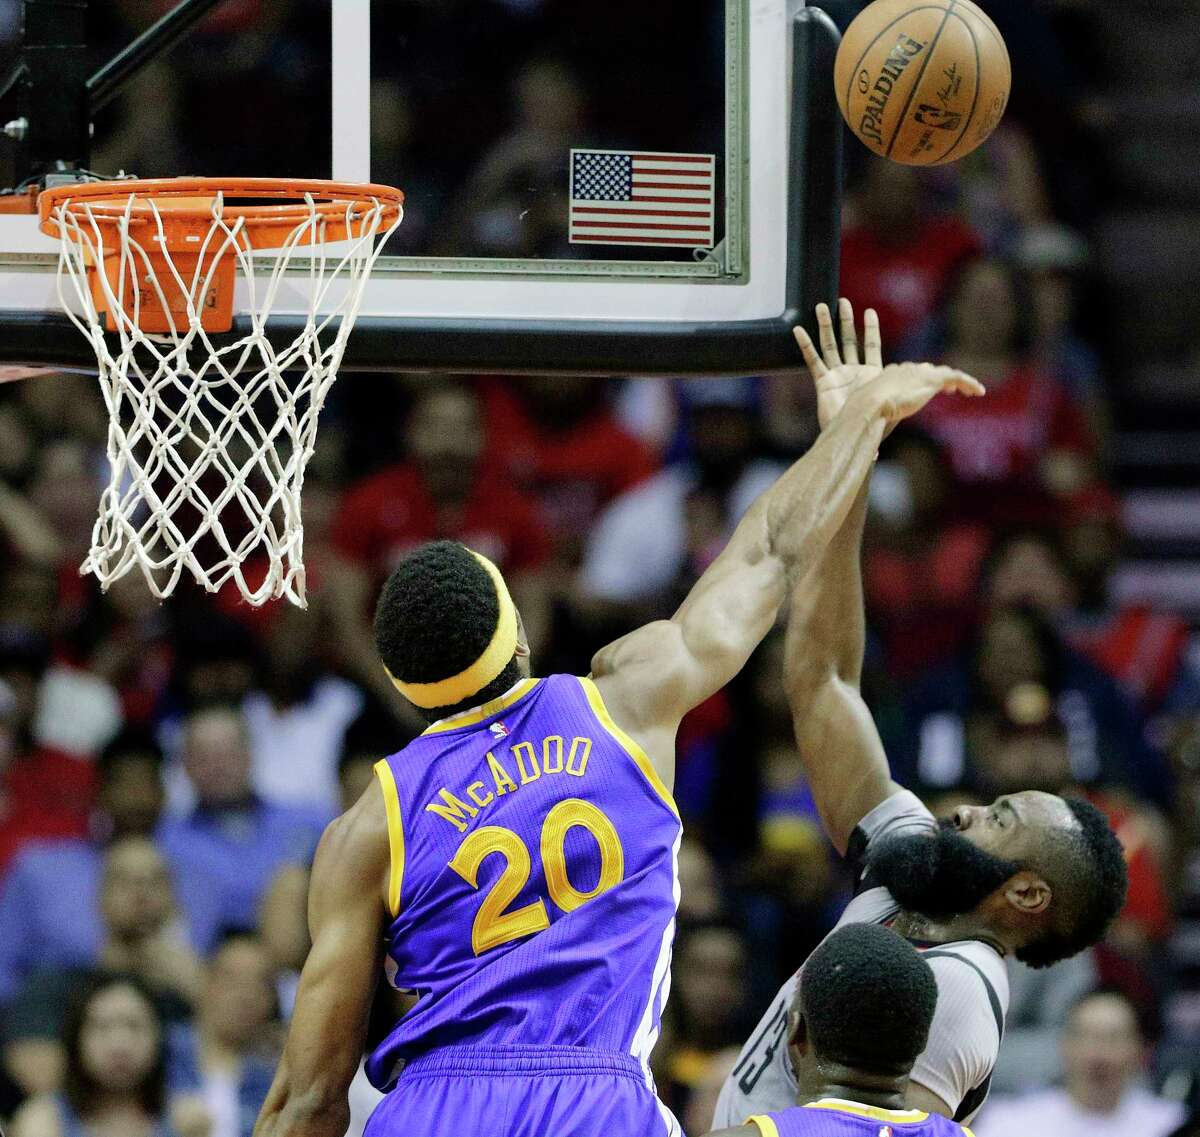 Golden State Warriors' James Michael McAdoo (20) knocks away the shot attempt by Houston Rockets' James Harden (13) in the first half of an NBA basketball game in Houston, Tuesday, March 28, 2017. (AP Photo/Michael Wyke) ORG XMIT: TXMW105